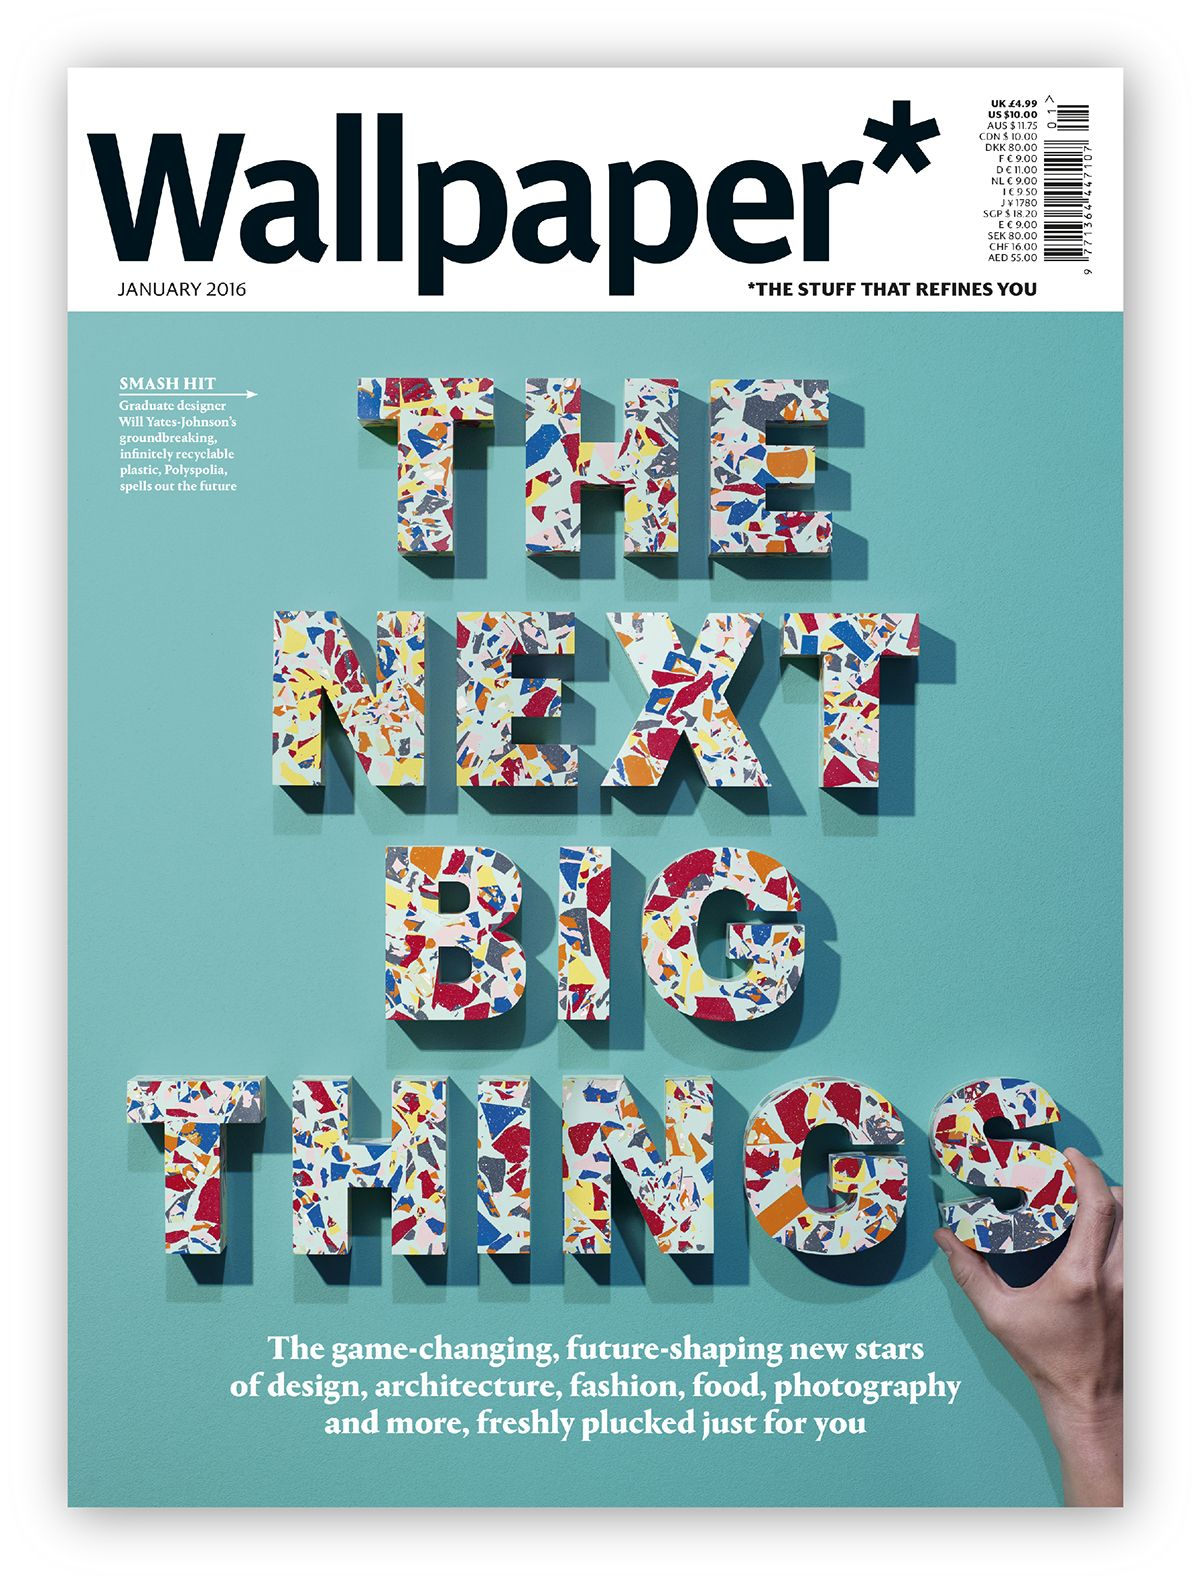 Wallpaper* Magazine - The Next Big Things on Behance